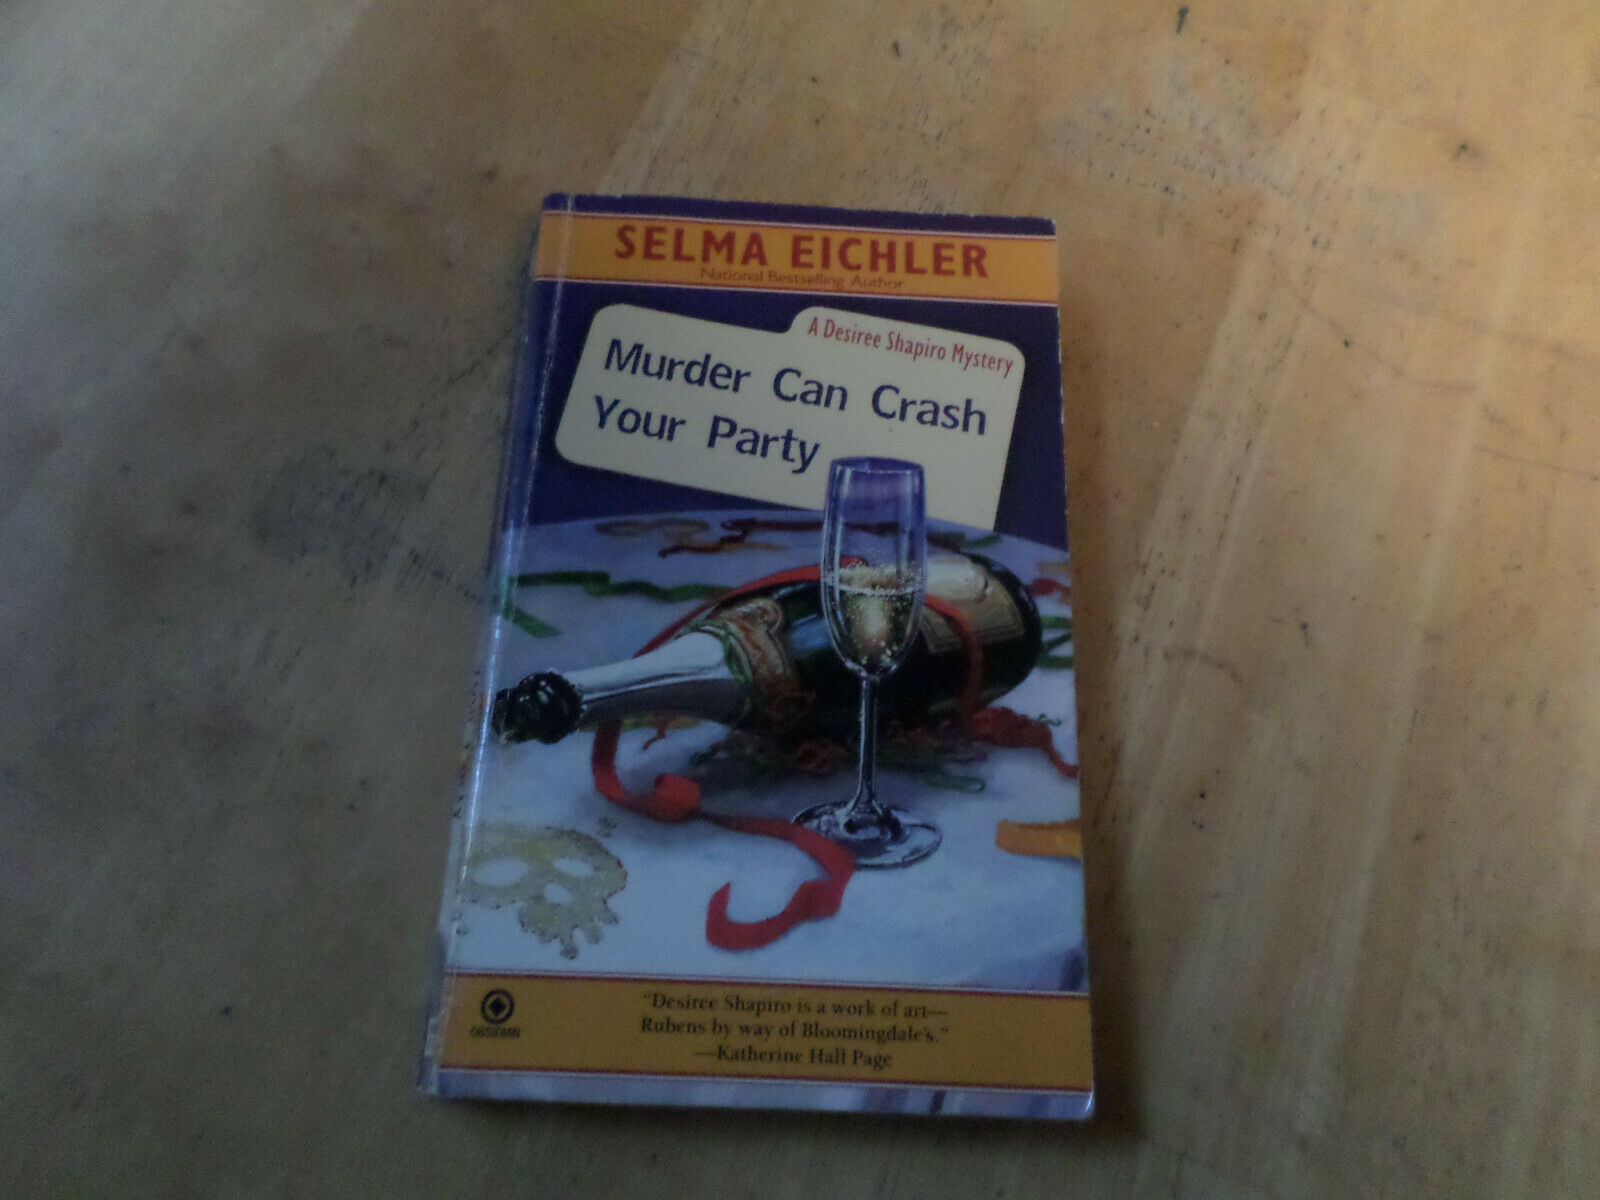 Primary image for Murder Can Crash Your Party by Selma Eichler (2008, Paperback)